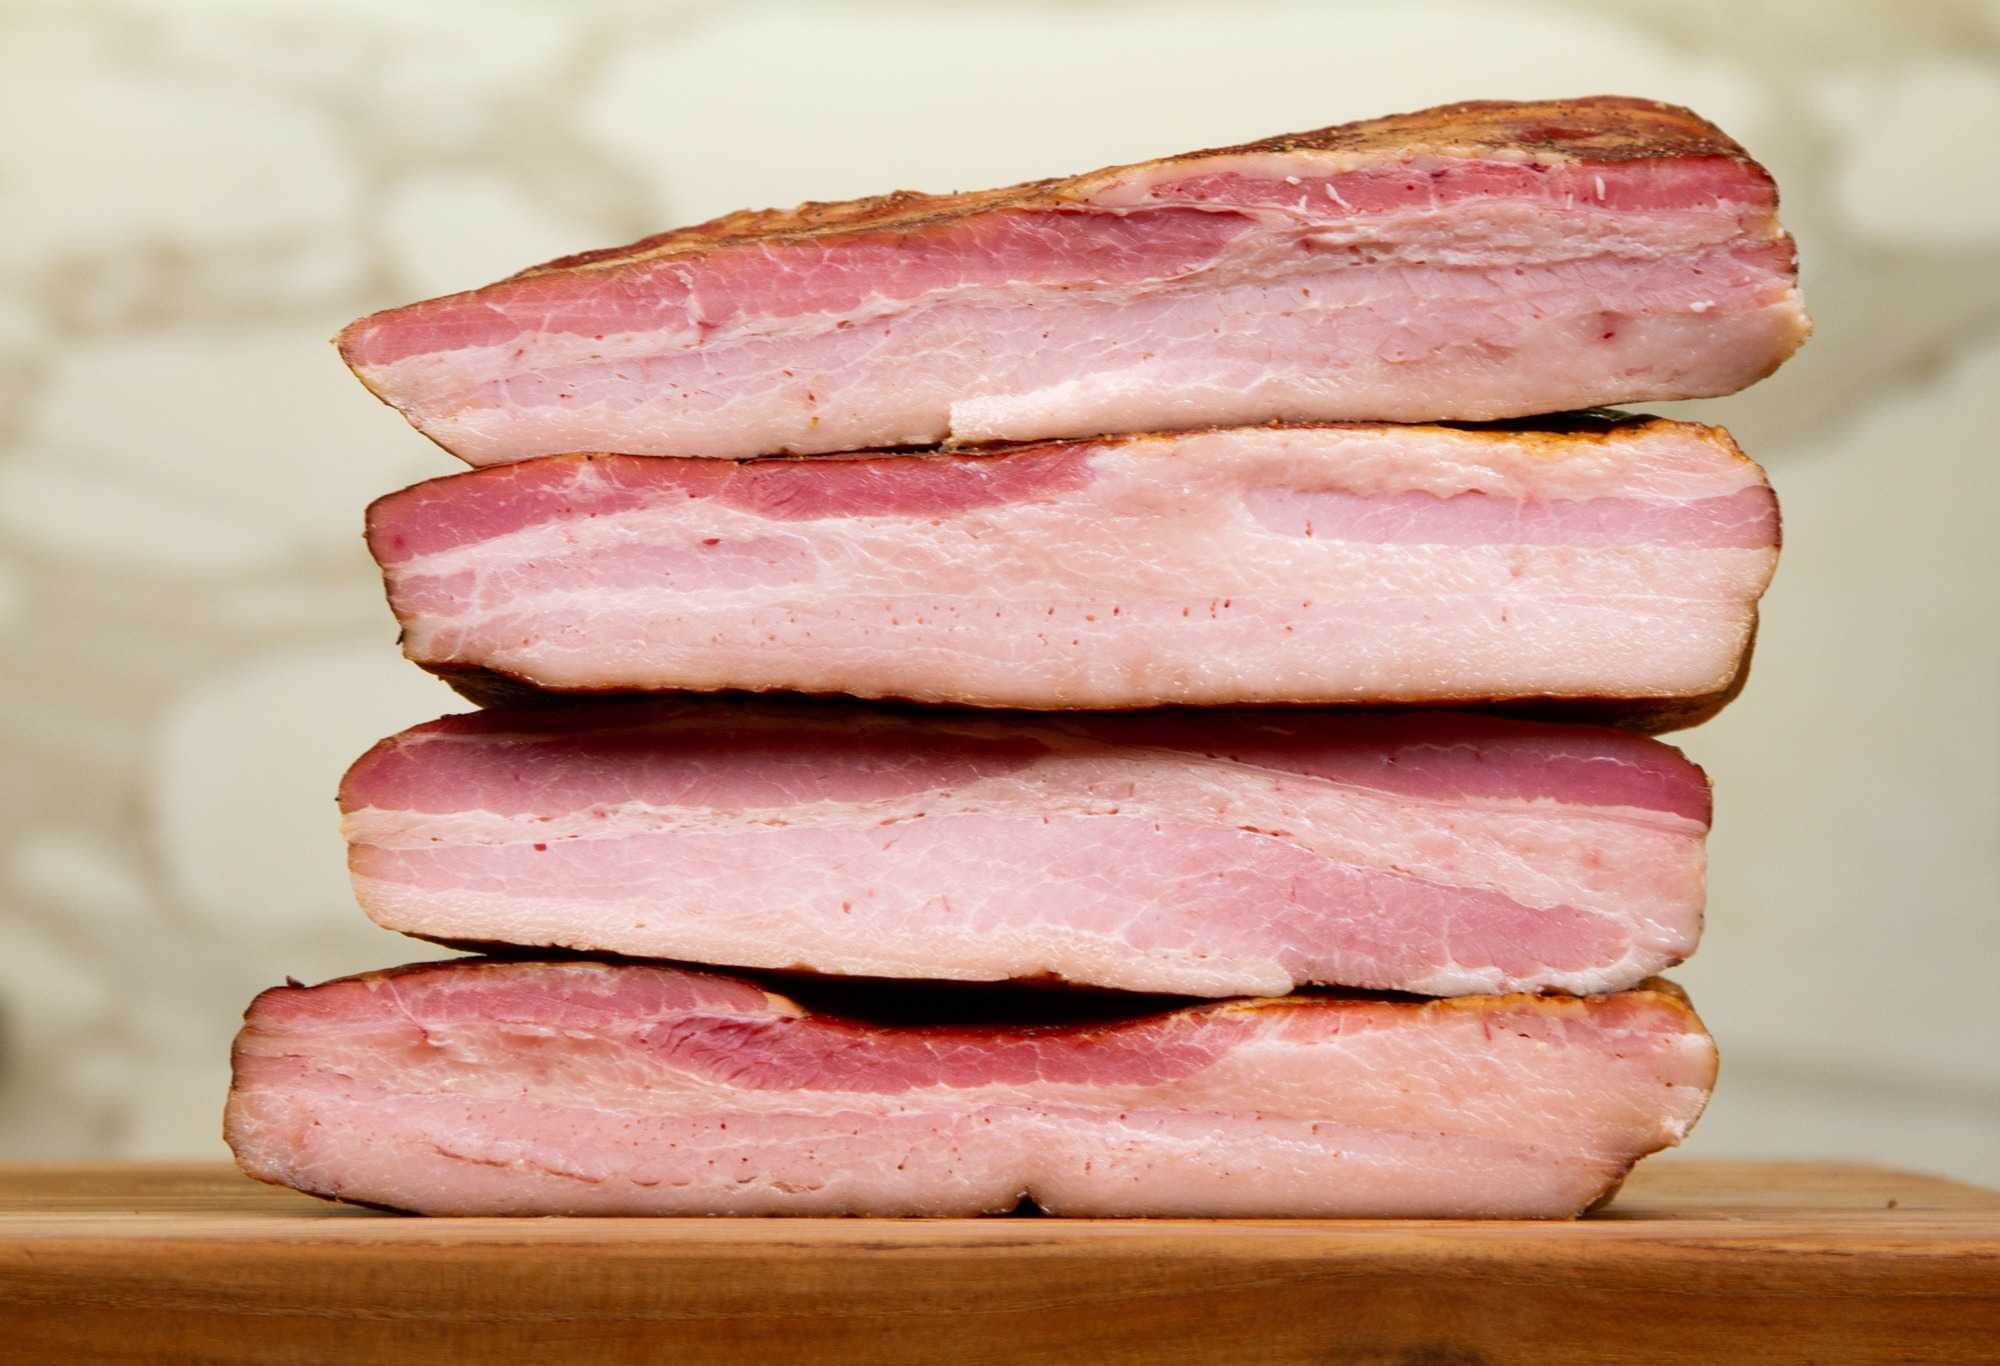 How to Make Your Own Smoked Bacon | ThermoWorks